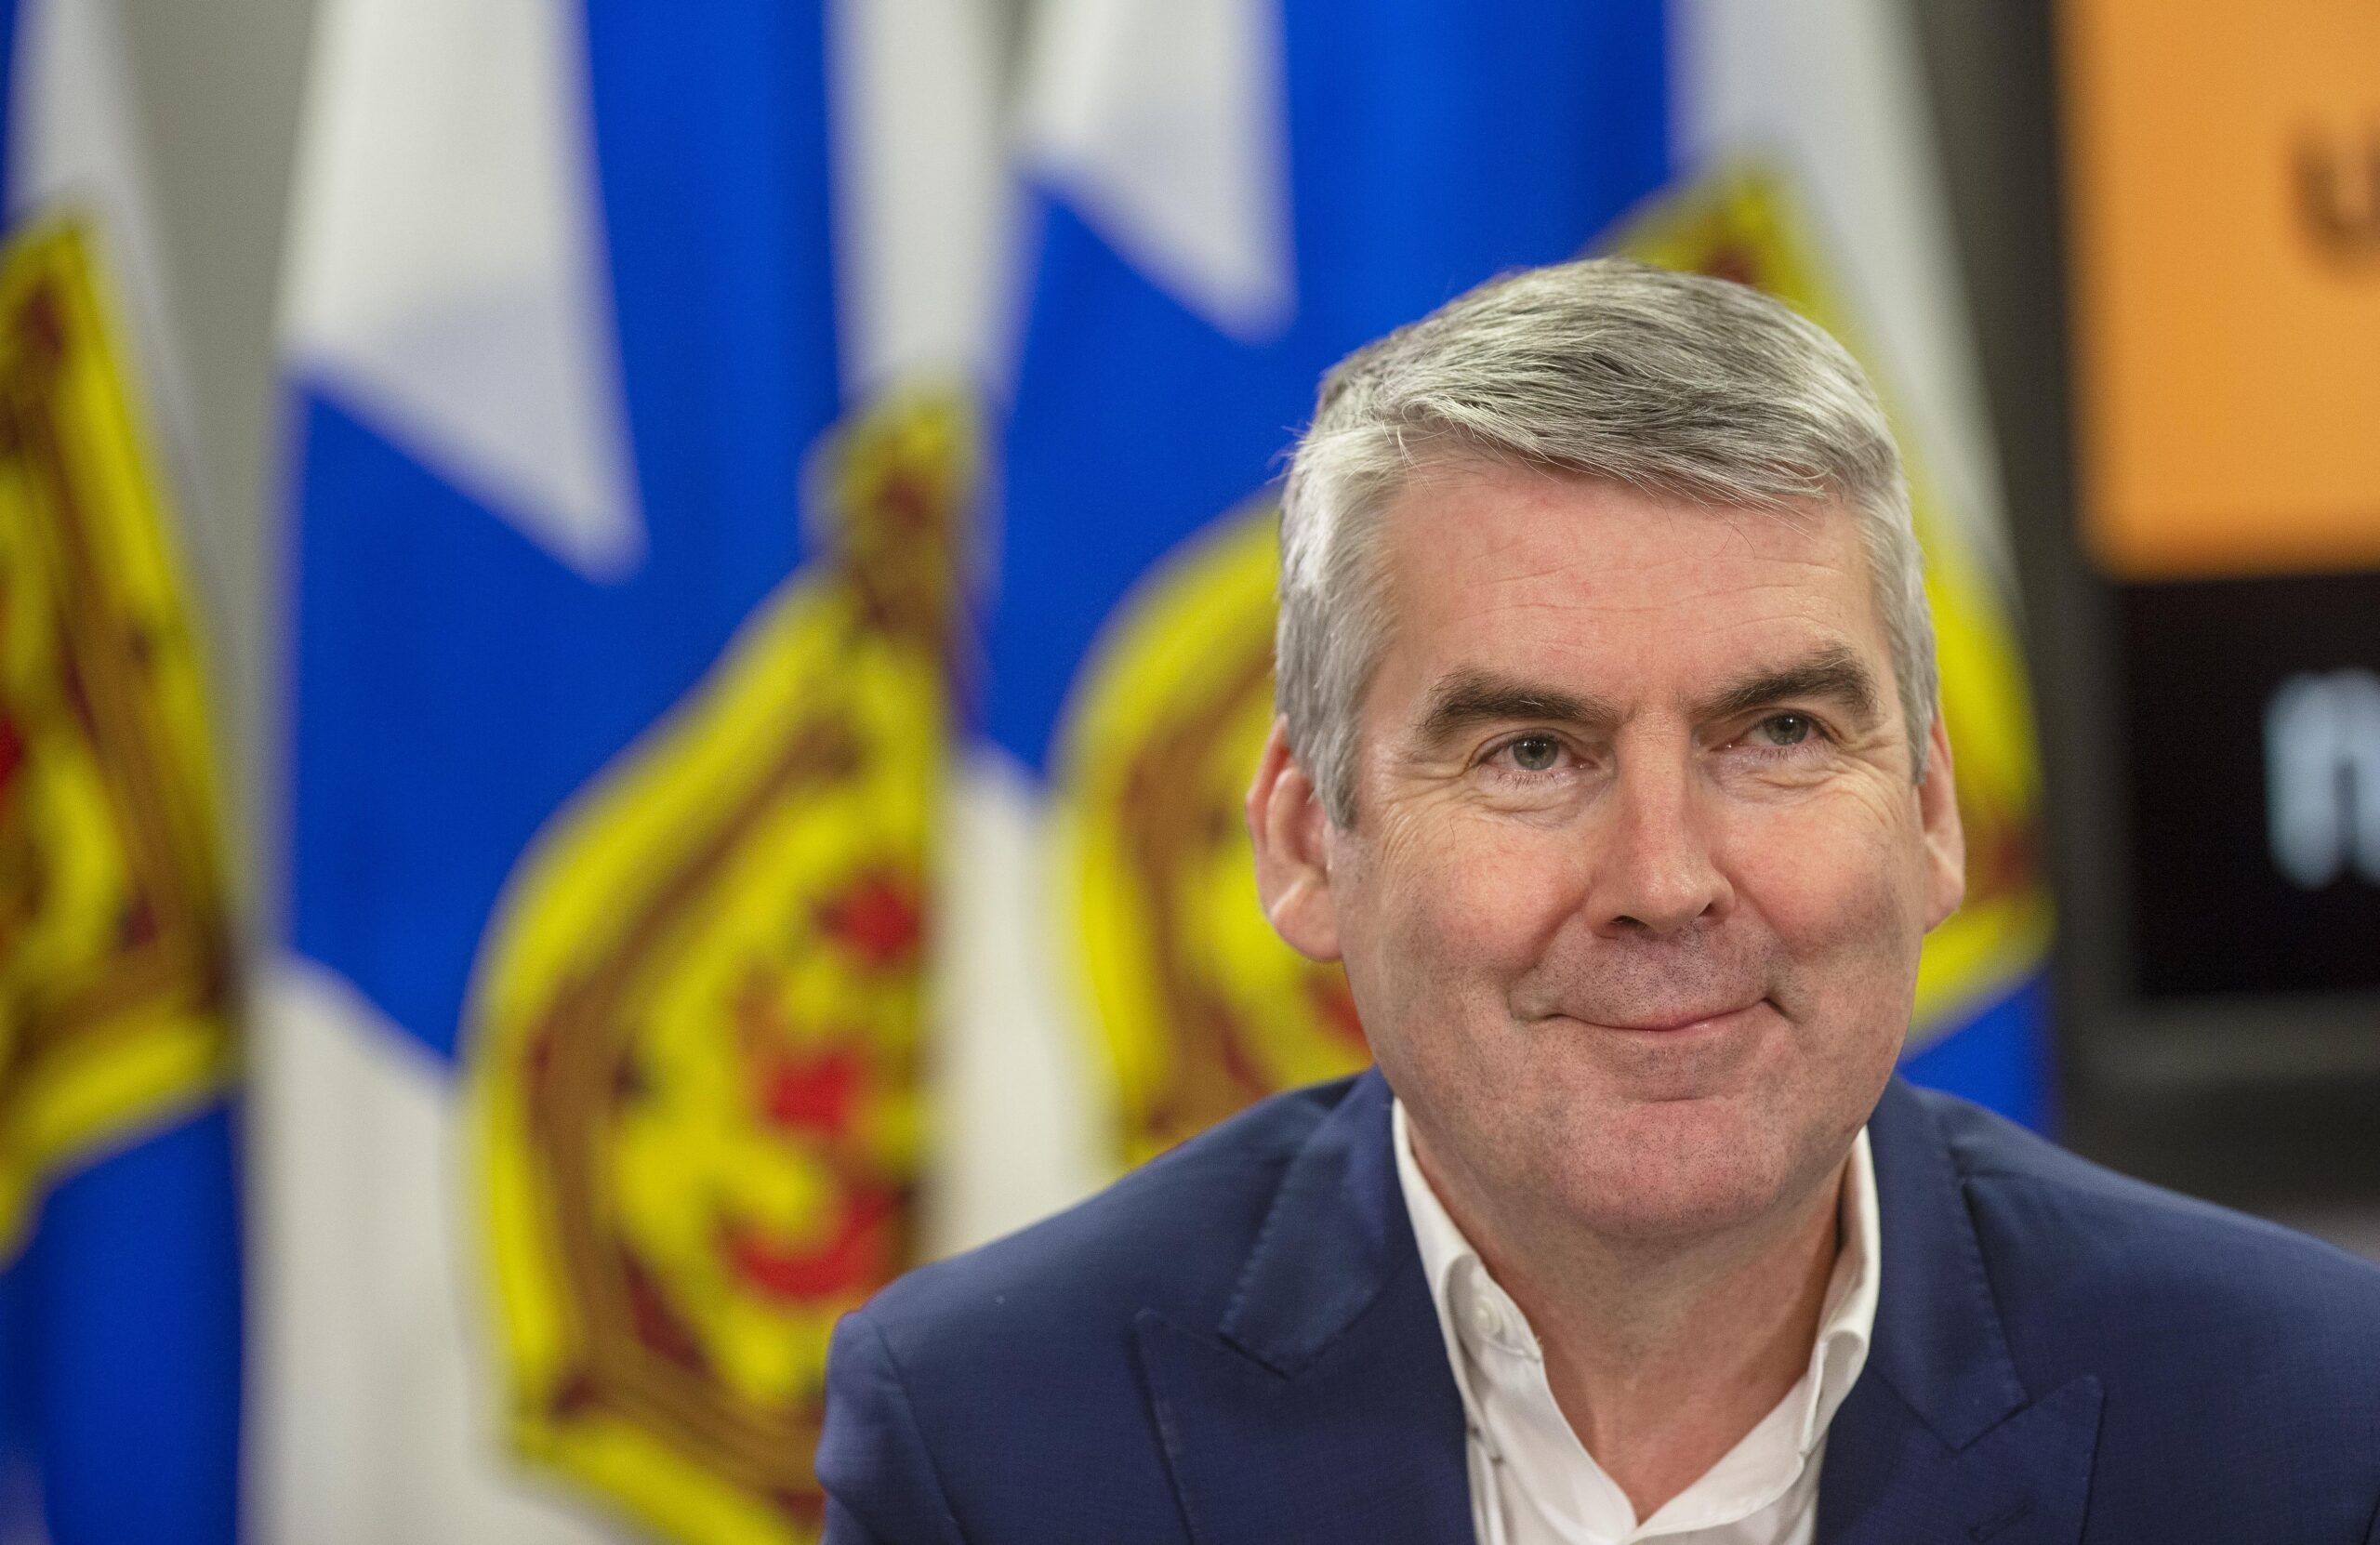 A photo of Stephen McNeil taken in February. He's smiling like the cat that ate the canary.